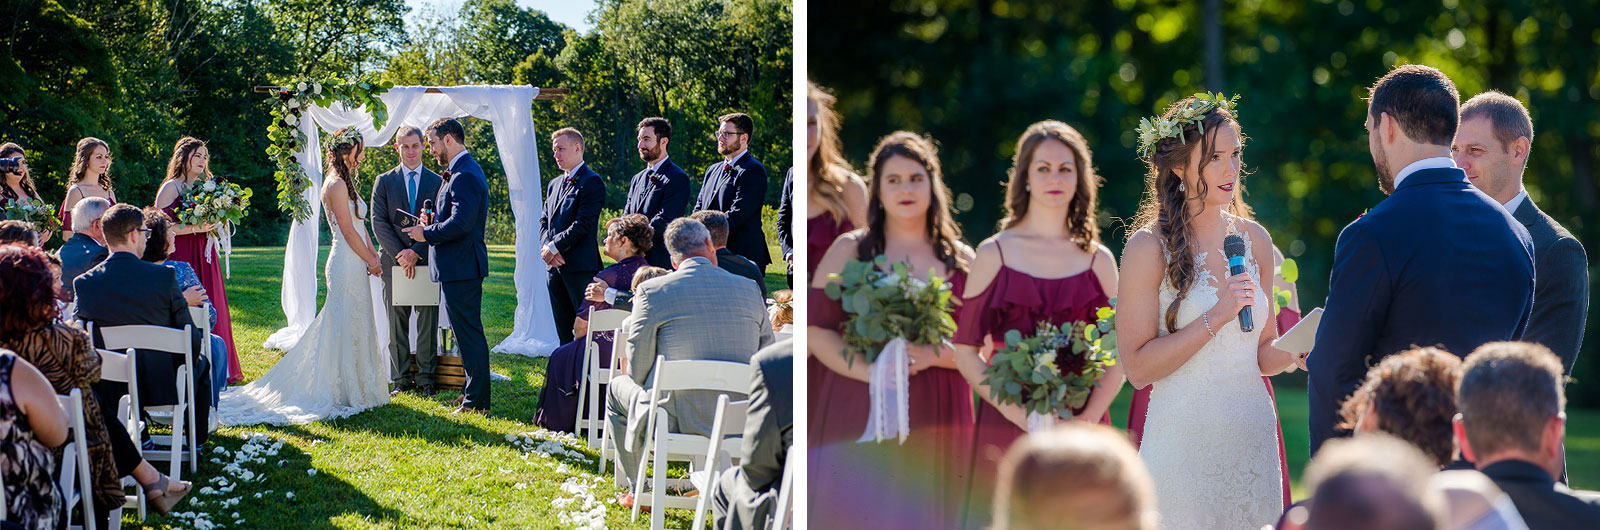 Eric_and_Christy_Photography_Blog_Stephanie_Nick_Wedding-68-69